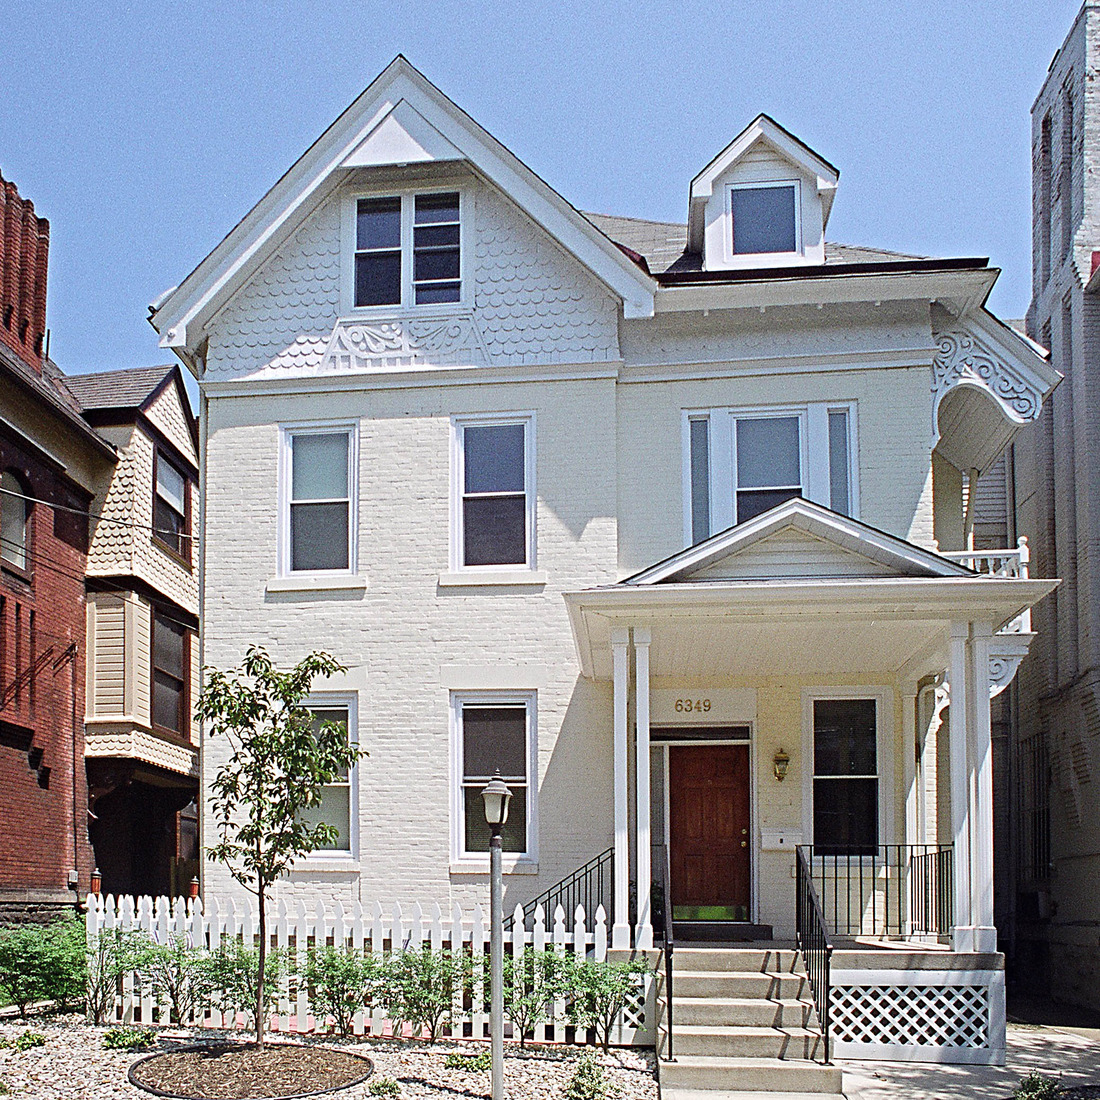 Shadyside Apartments: 6349 Marchand Street, Apt. A